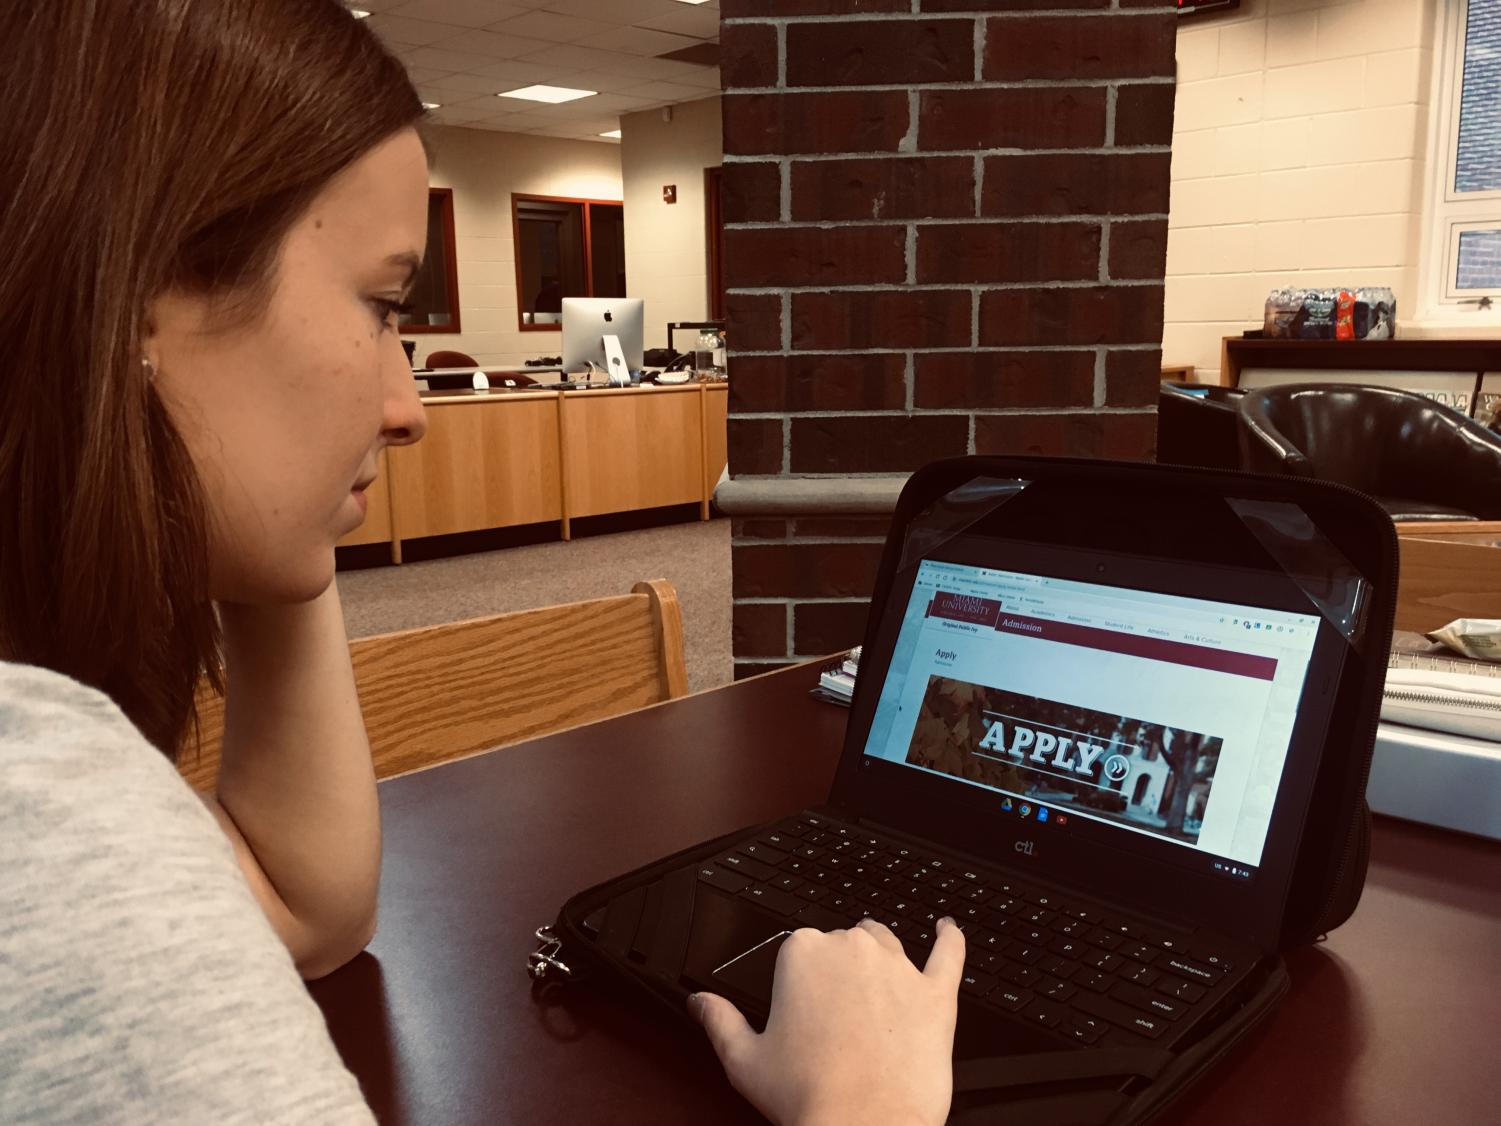 Senior Megan Foster researches the application requirements for a local university.